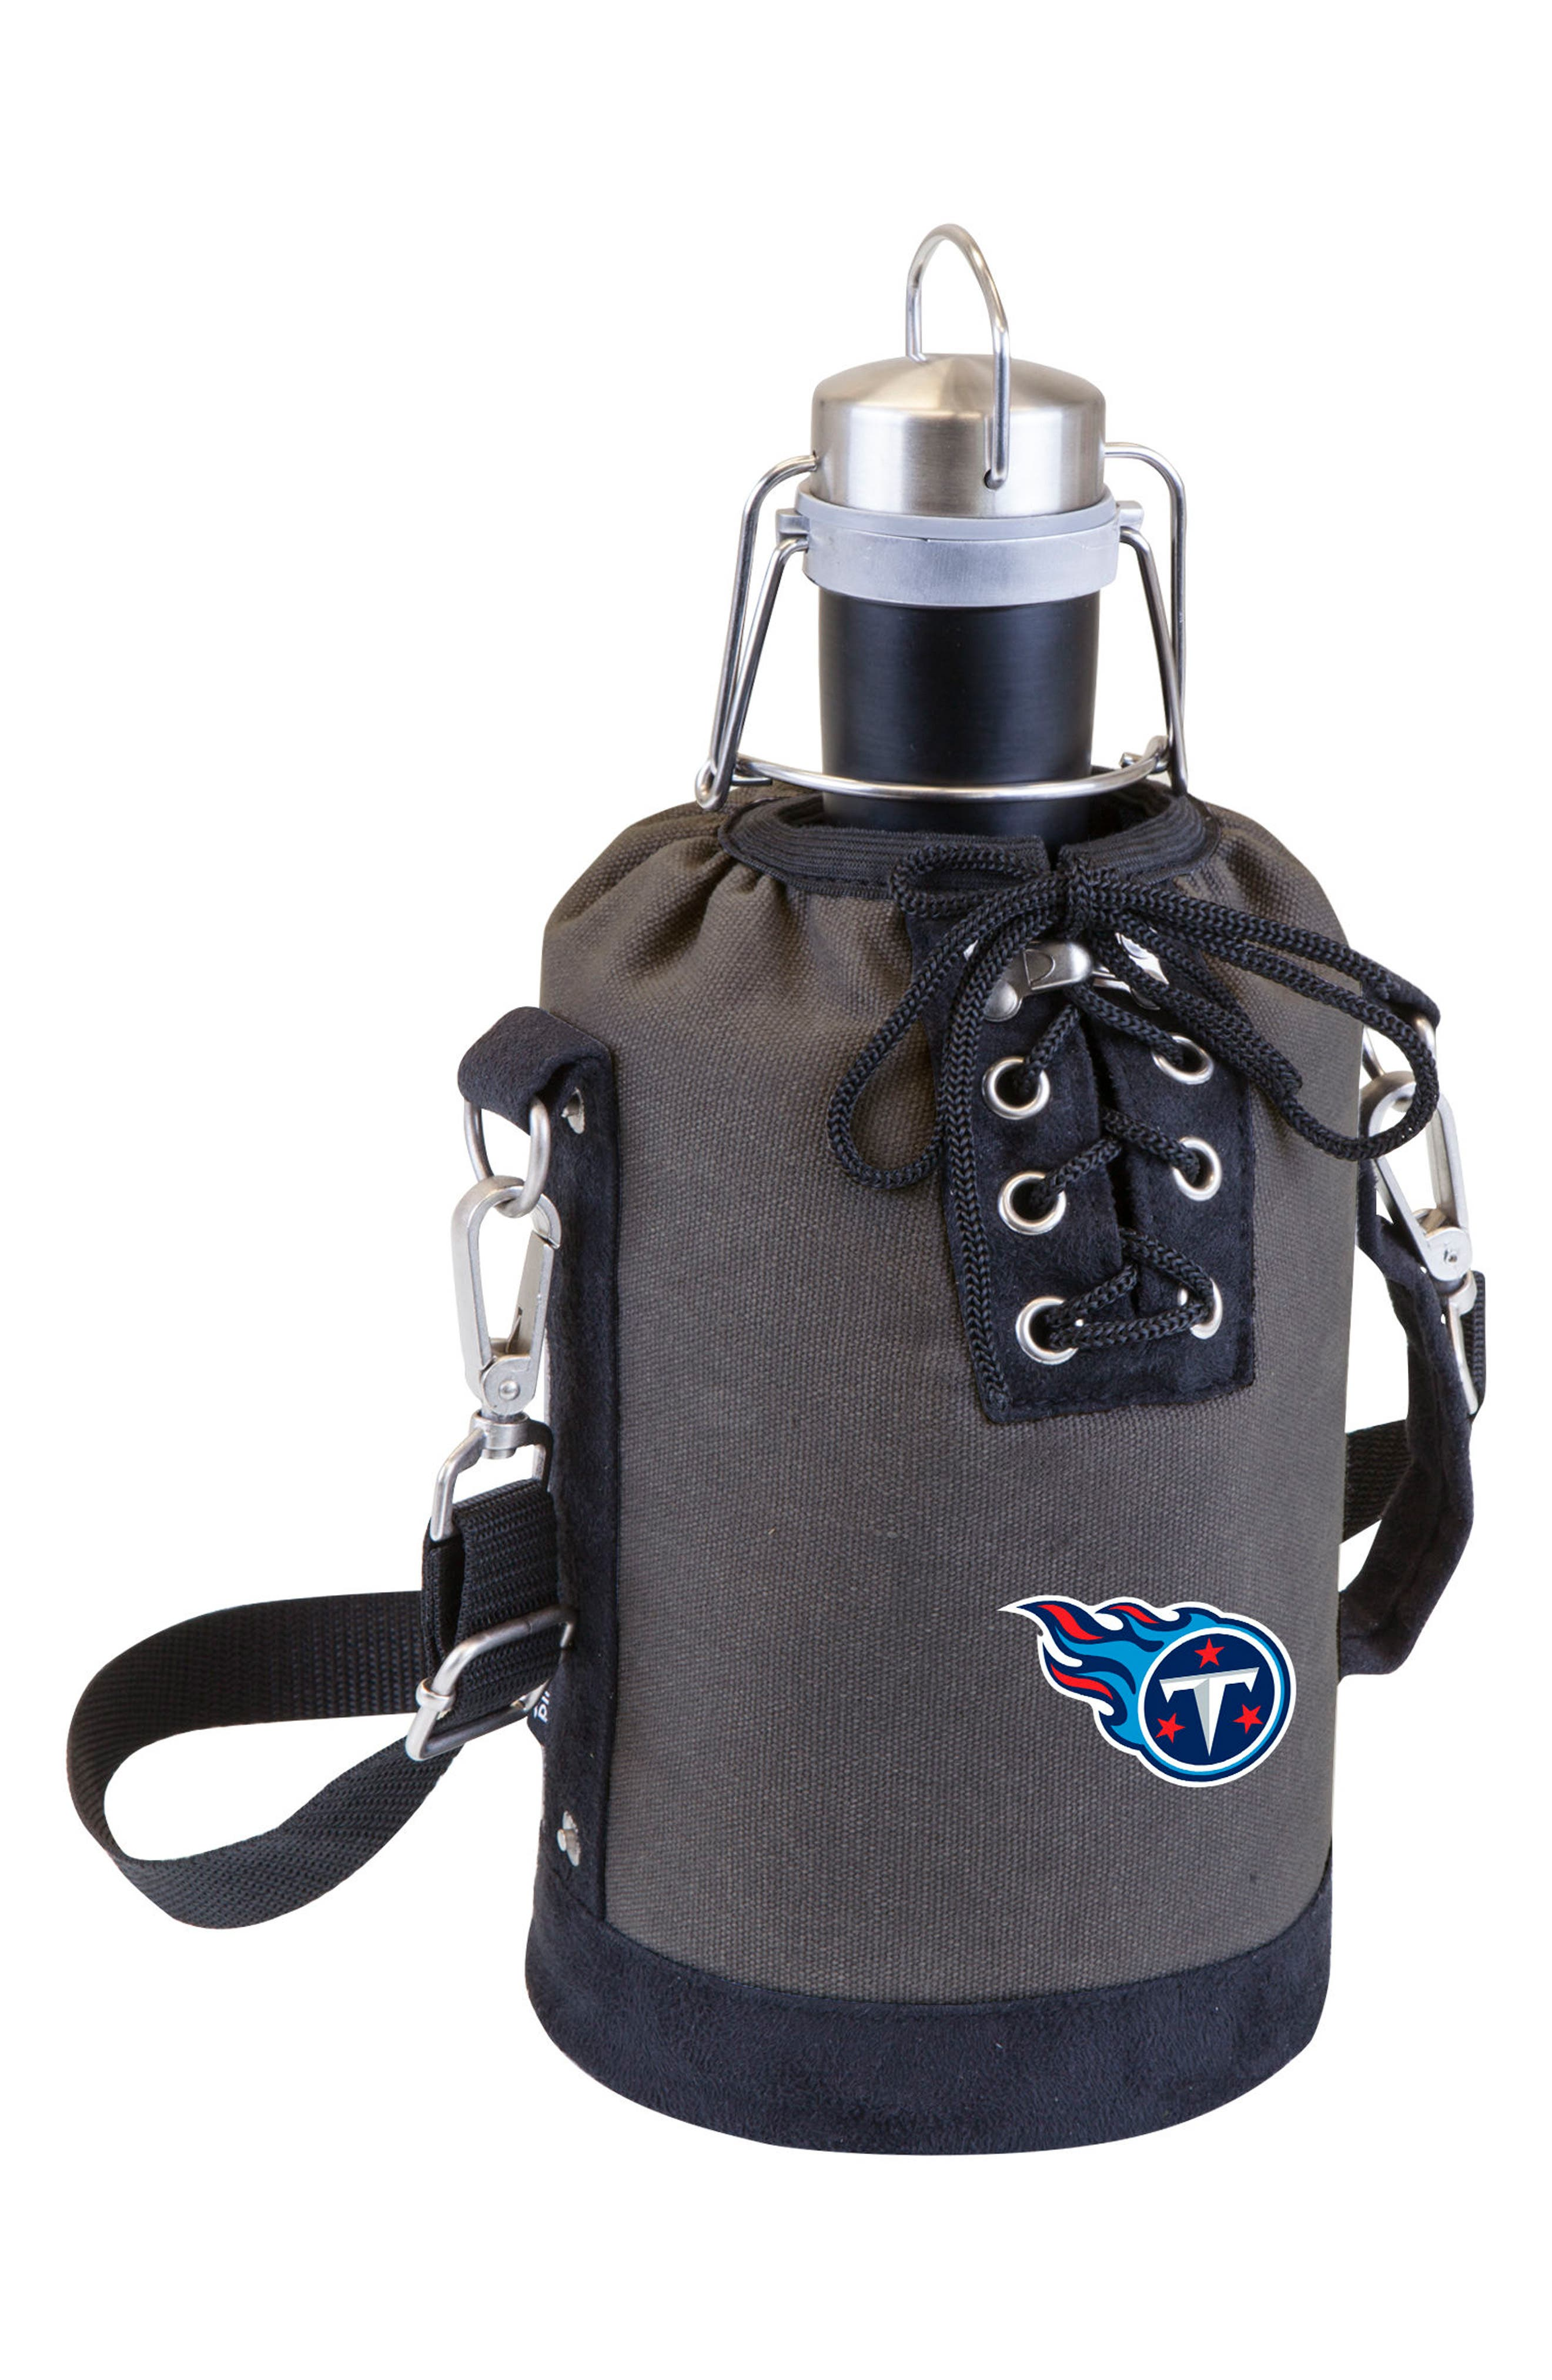 Main Image - Picnic Time NFL Team Logo Tote & Stainless Steel Growler